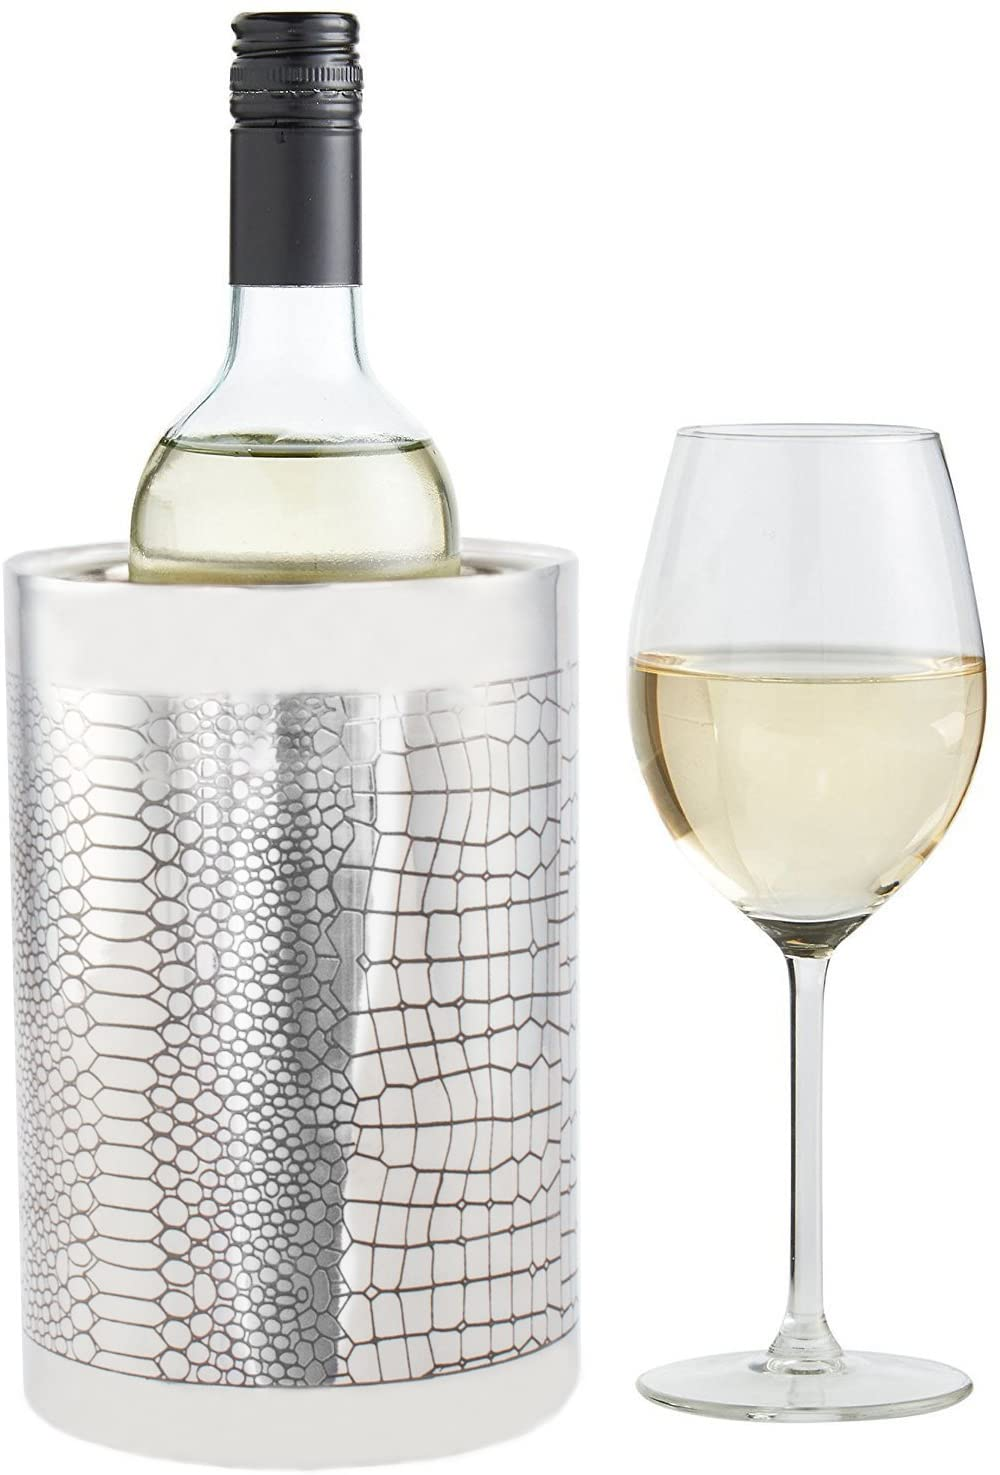 Imperial Home Stainless Steel Wine Chiller Bucket, Double Wall Tabletop Wine Cooler With Snakeskin Design - Chic Double Wall Wine Cooler with Snakeskin Design